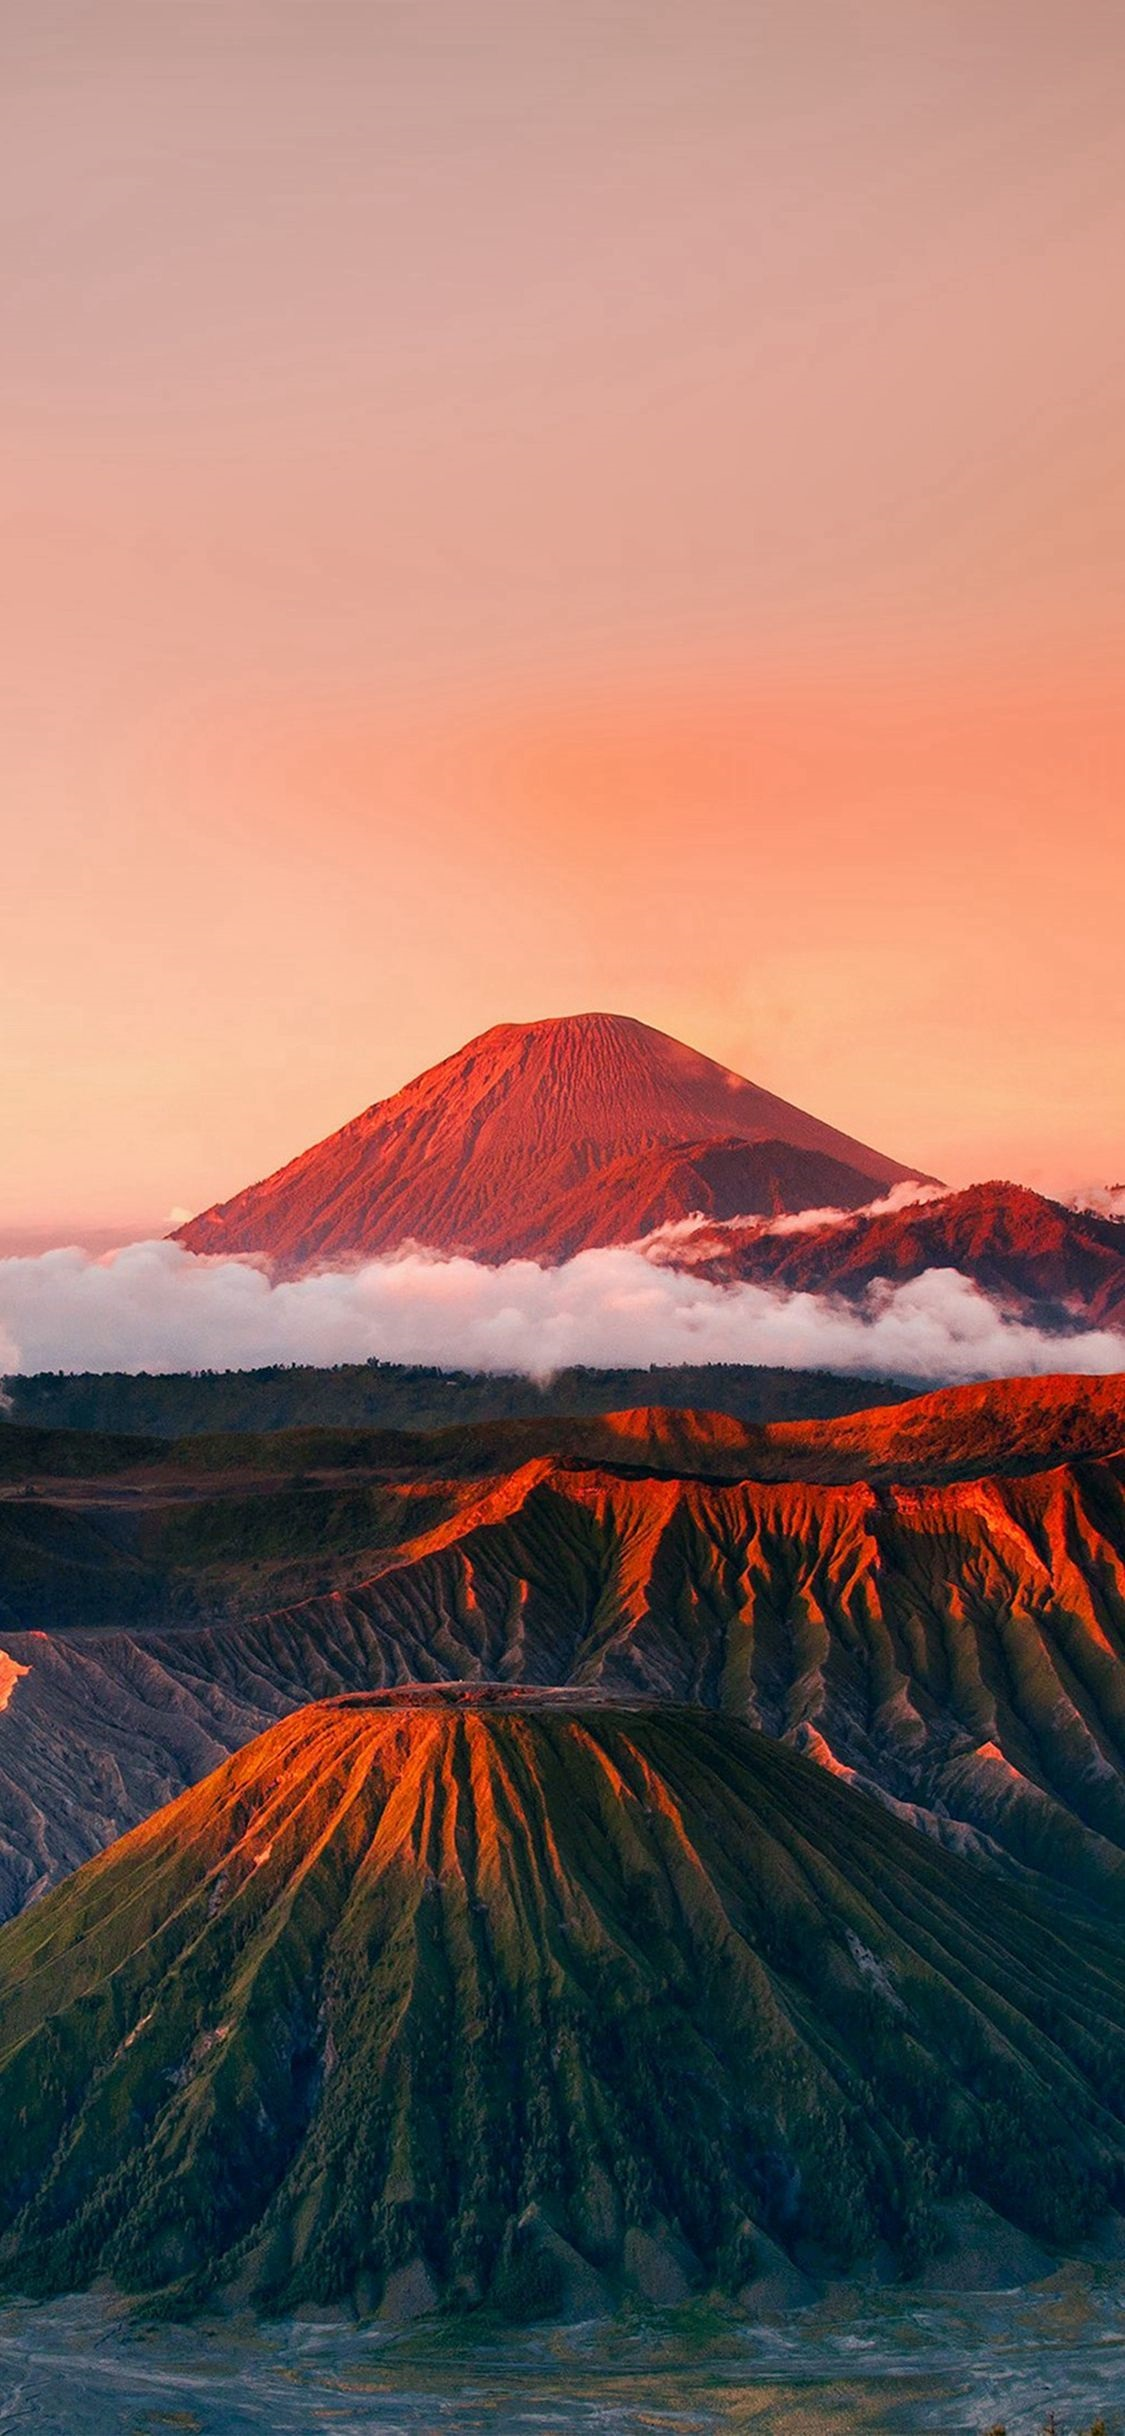 New Zealand Wallpaper For Iphone Mount Bromo 2066406 Hd Wallpaper Backgrounds Download